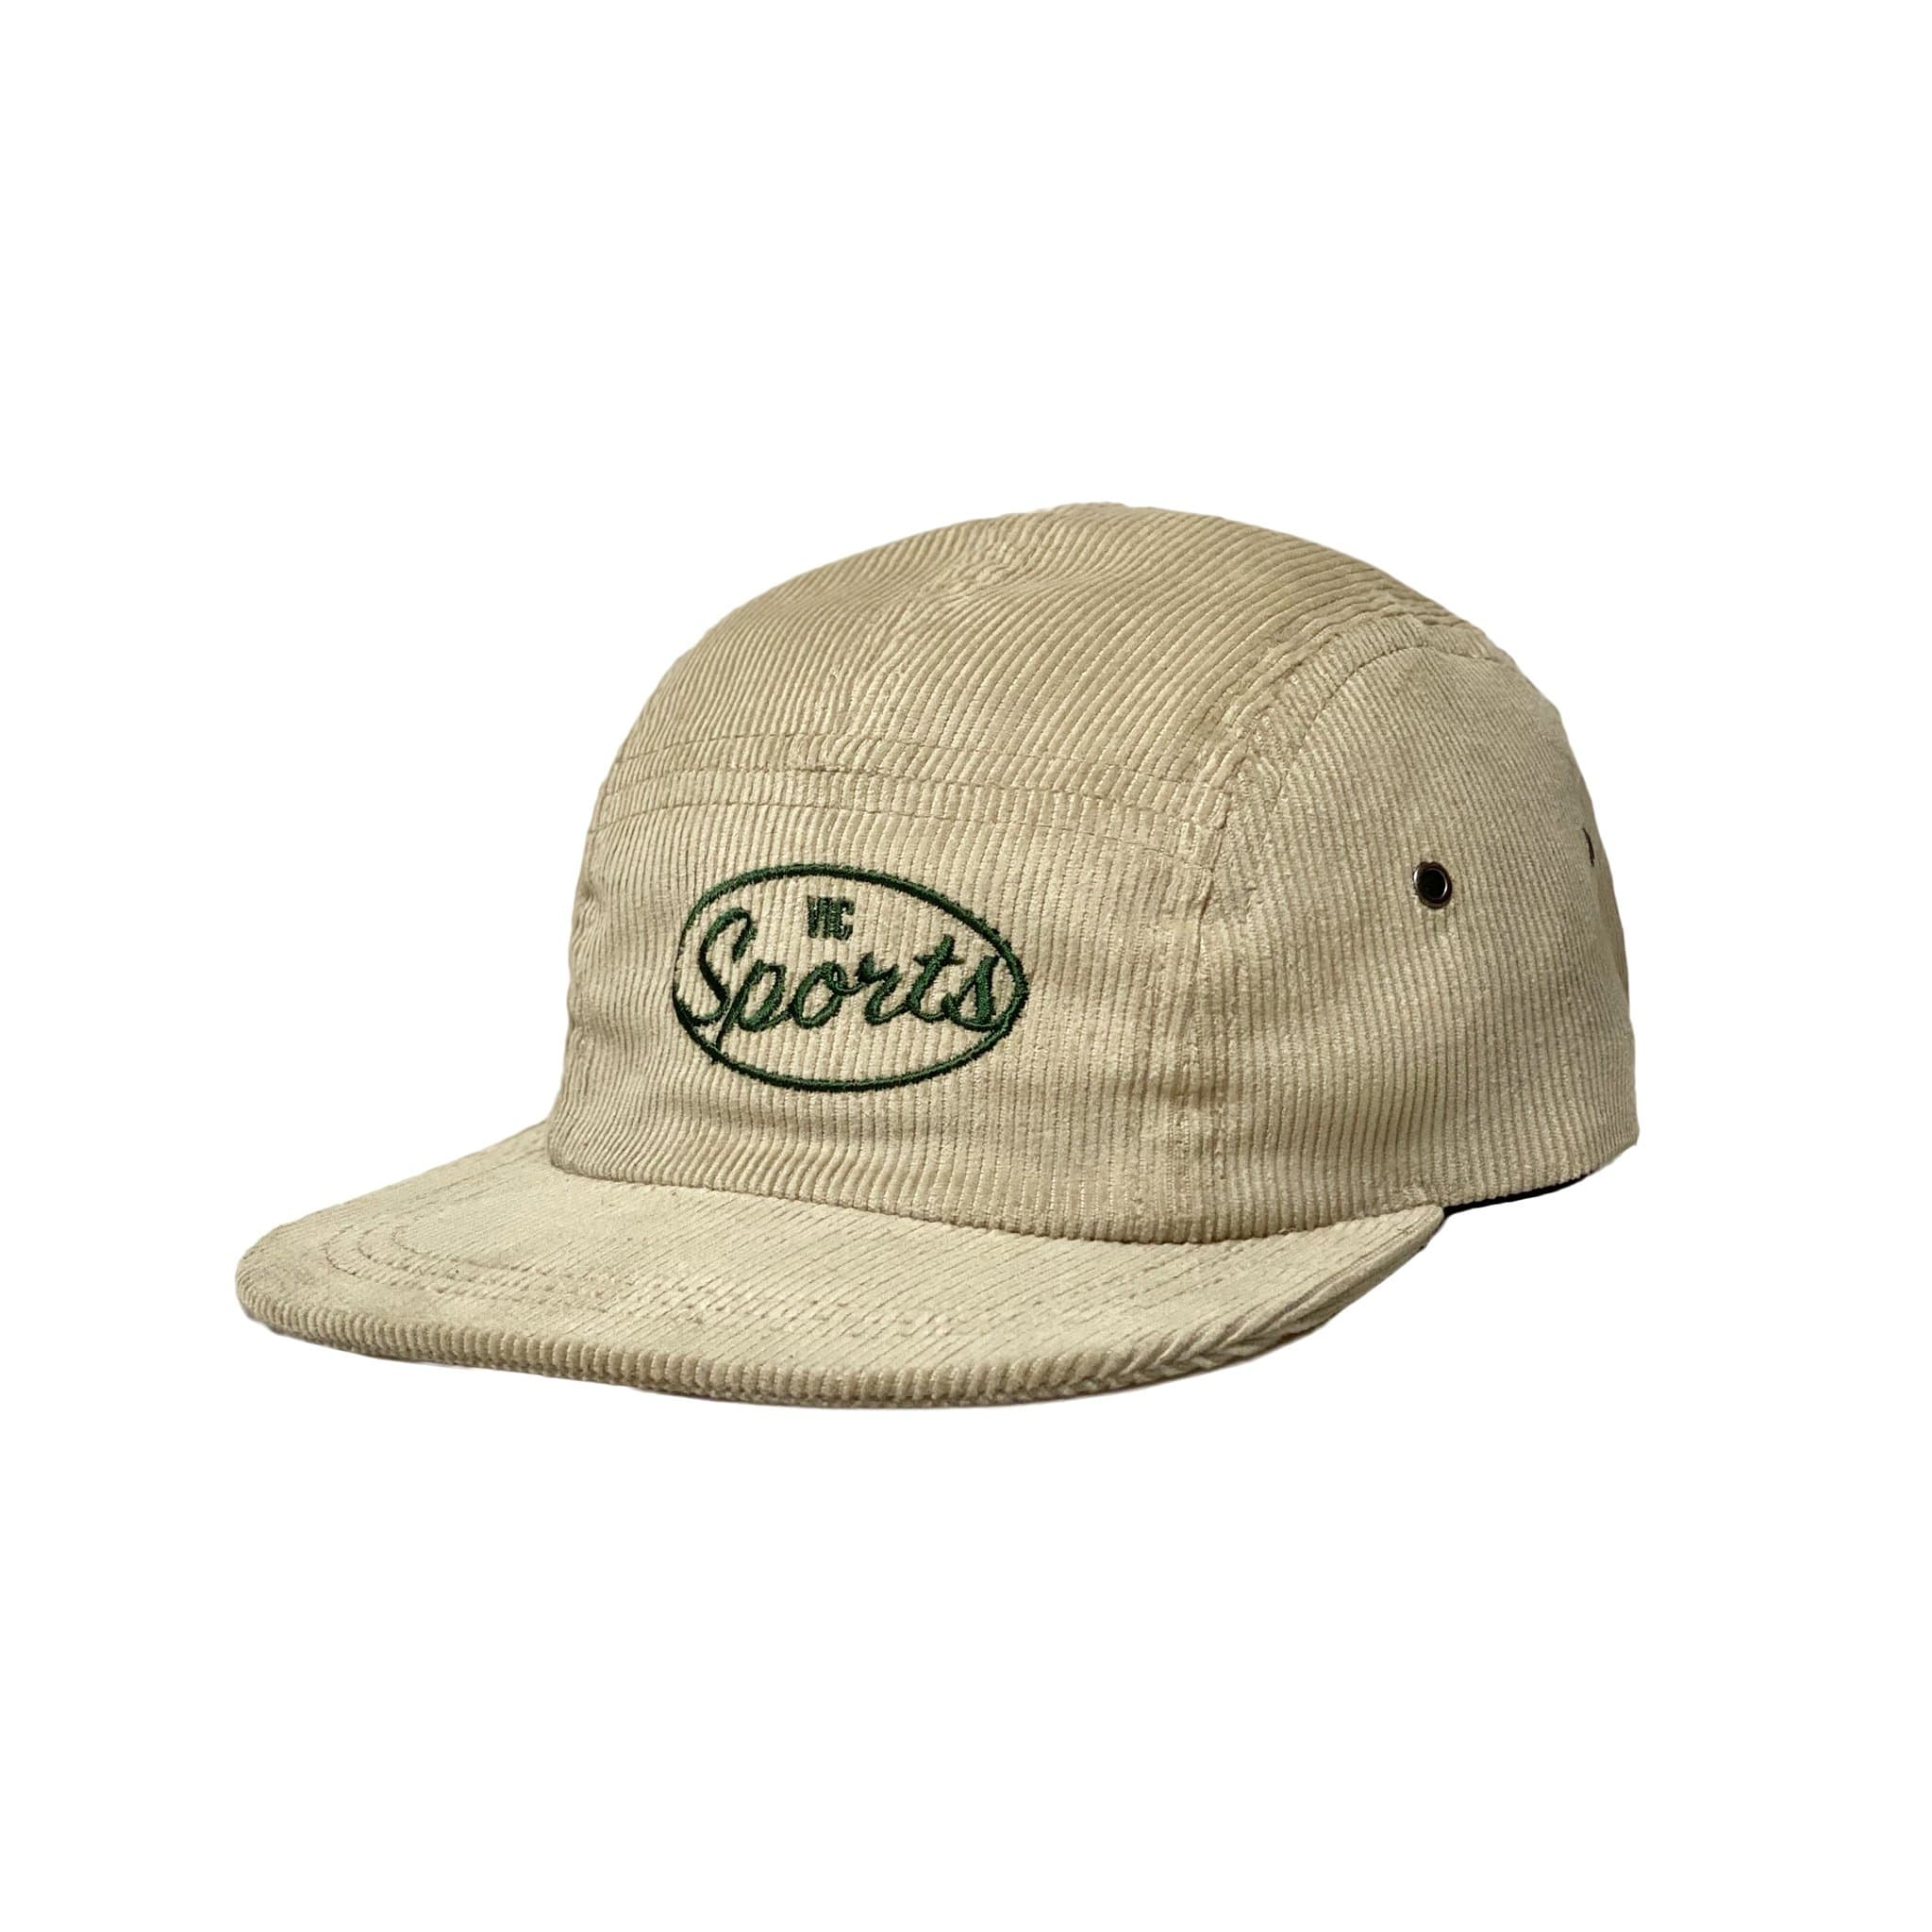 Premium quality corduroy 5-panel camp hat by New Zealand skate and streetwear clothing label VIC Apparel. Embroidered logo. Classic vintage camp cap style, hand made in New Zealand.